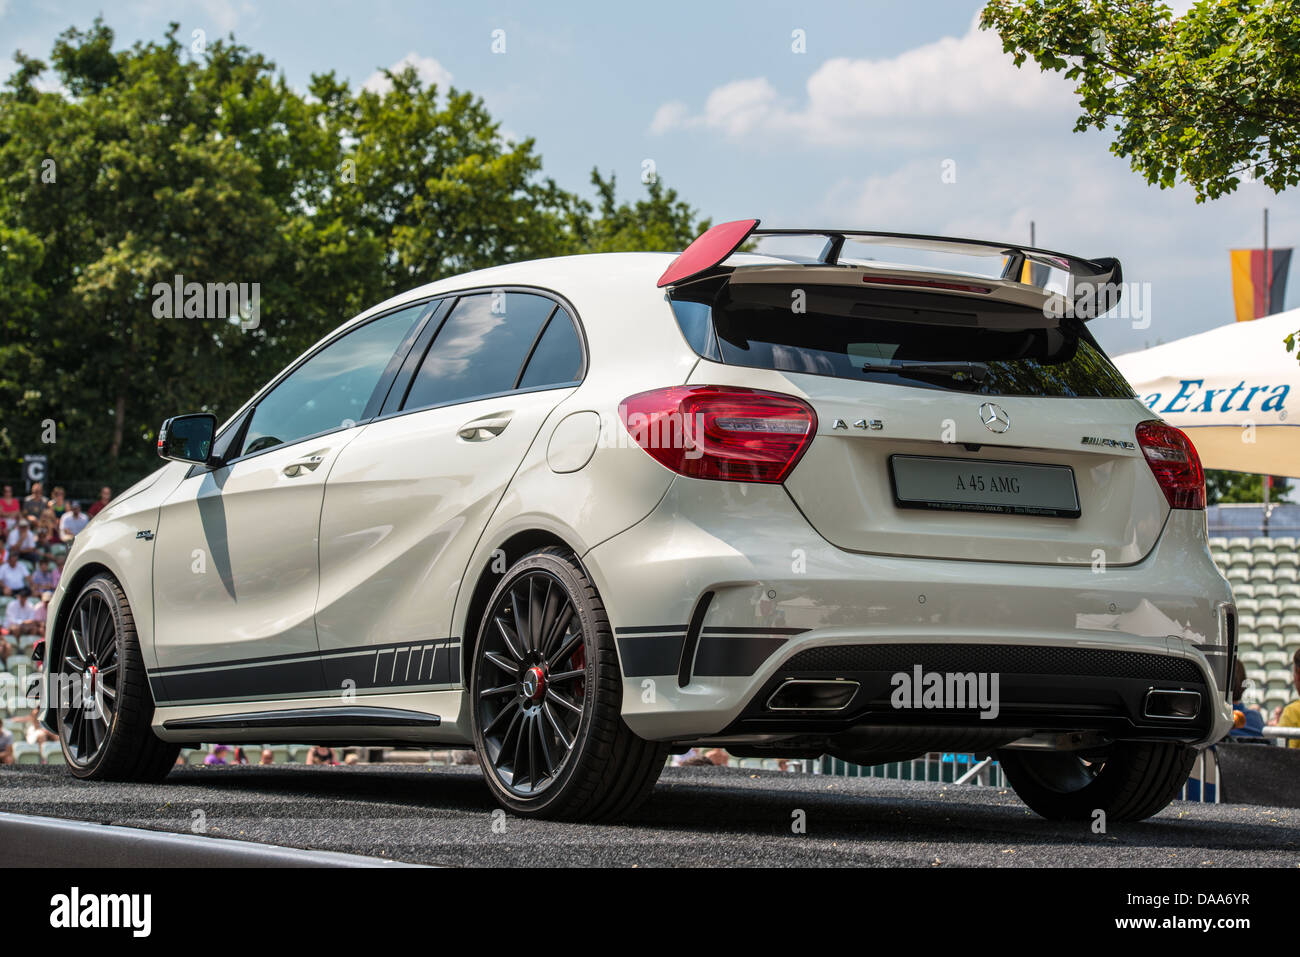 mercedes a class amg 45 as atp trophy in stuttgart germany stock photo royalty free image. Black Bedroom Furniture Sets. Home Design Ideas